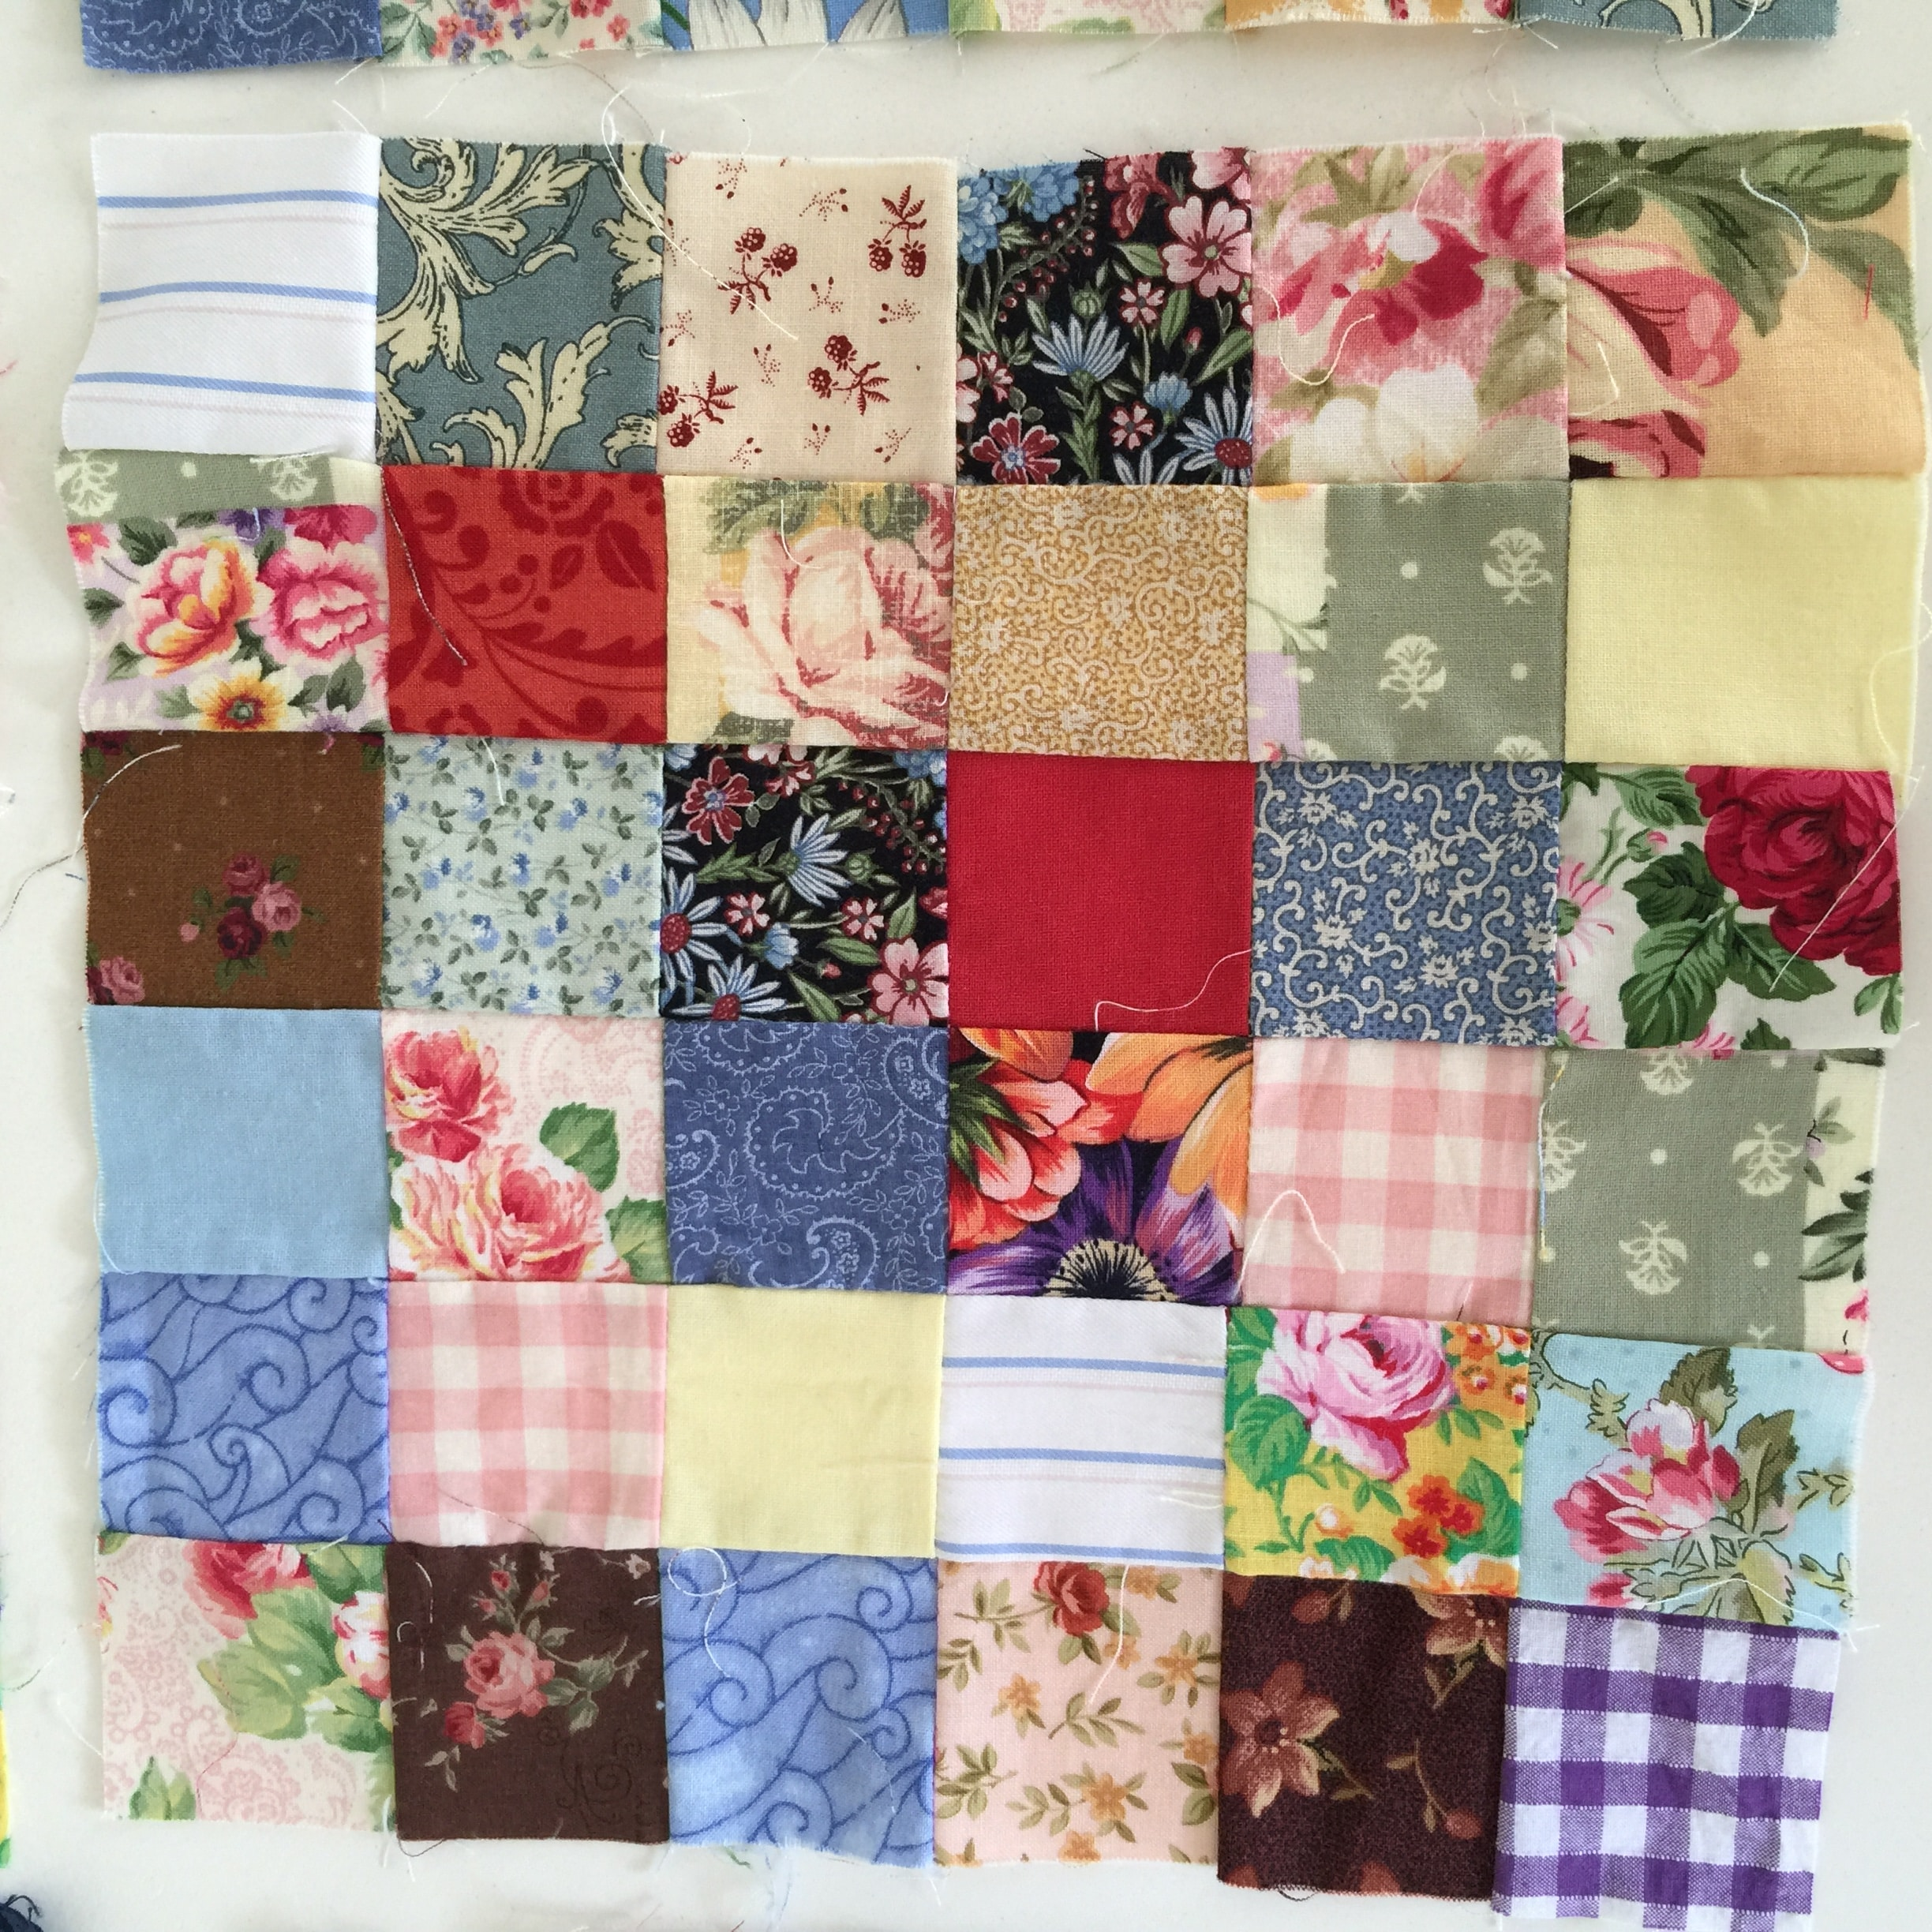 This Block Uses All Fabrics If You Were Ever Scared To Try A Scrap Quilt Or Blocks Can Do With Confidence Put In The Small Seemly